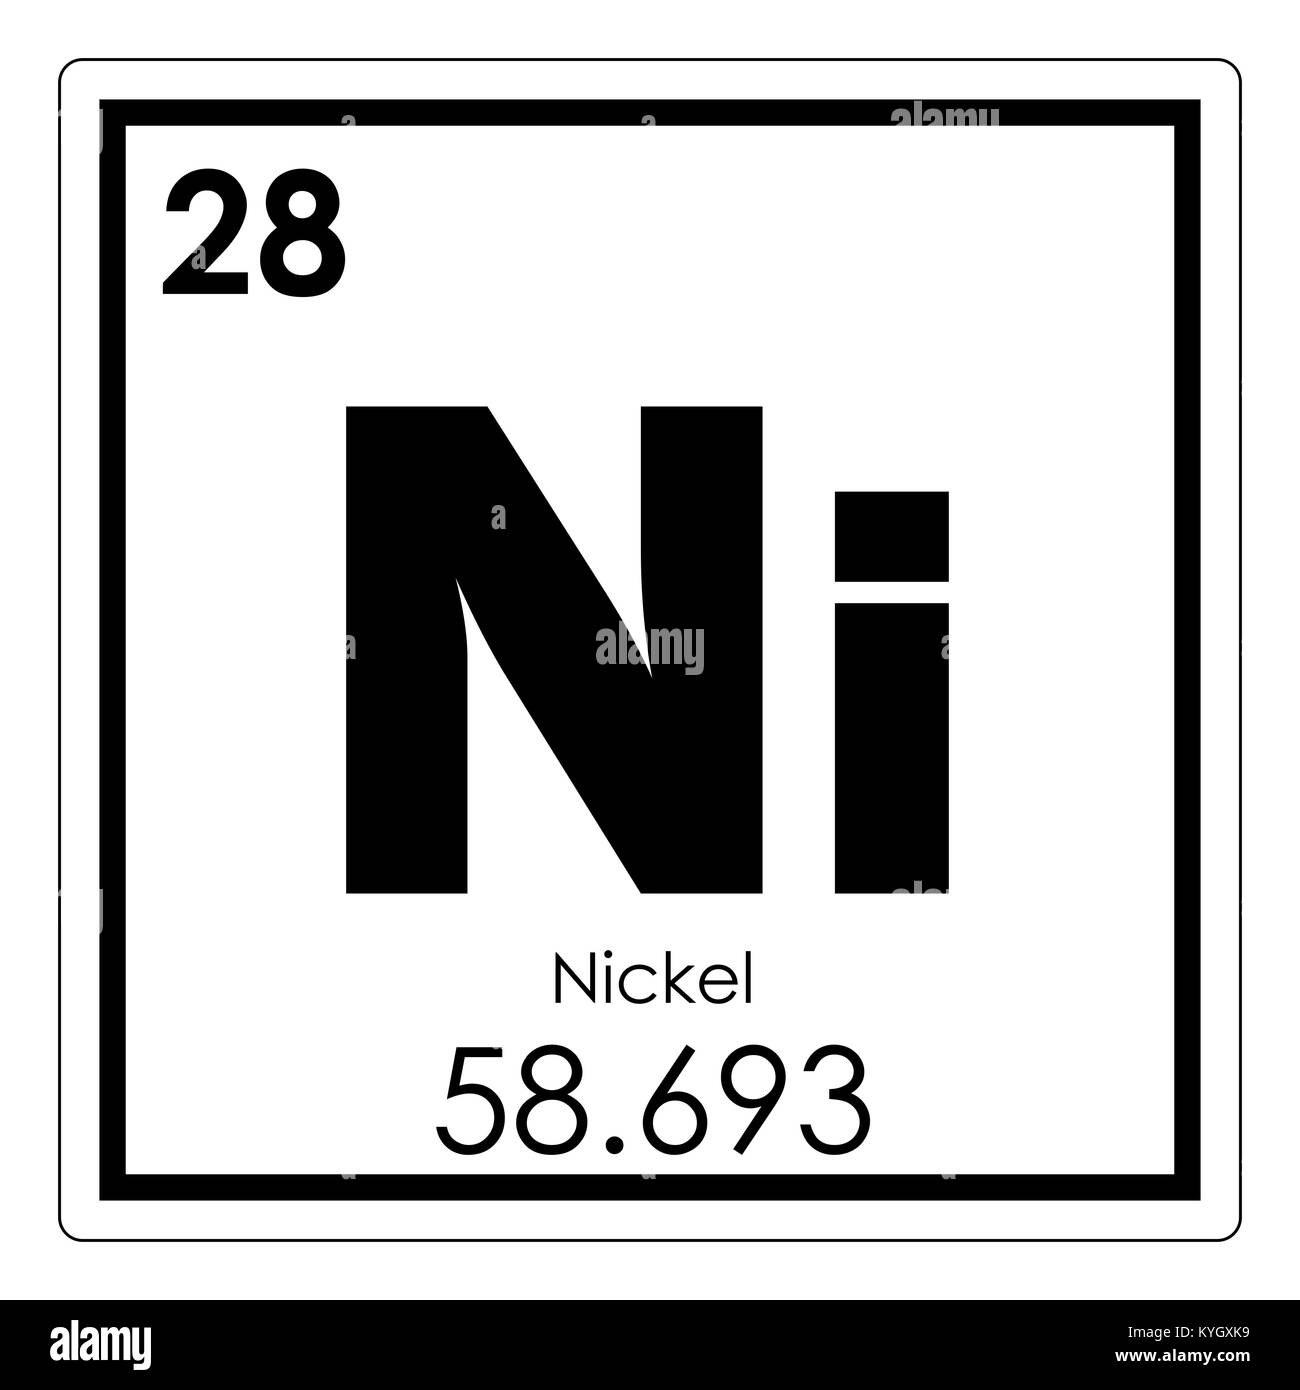 Nickel chemical element periodic table science symbol stock photo nickel chemical element periodic table science symbol buycottarizona Images